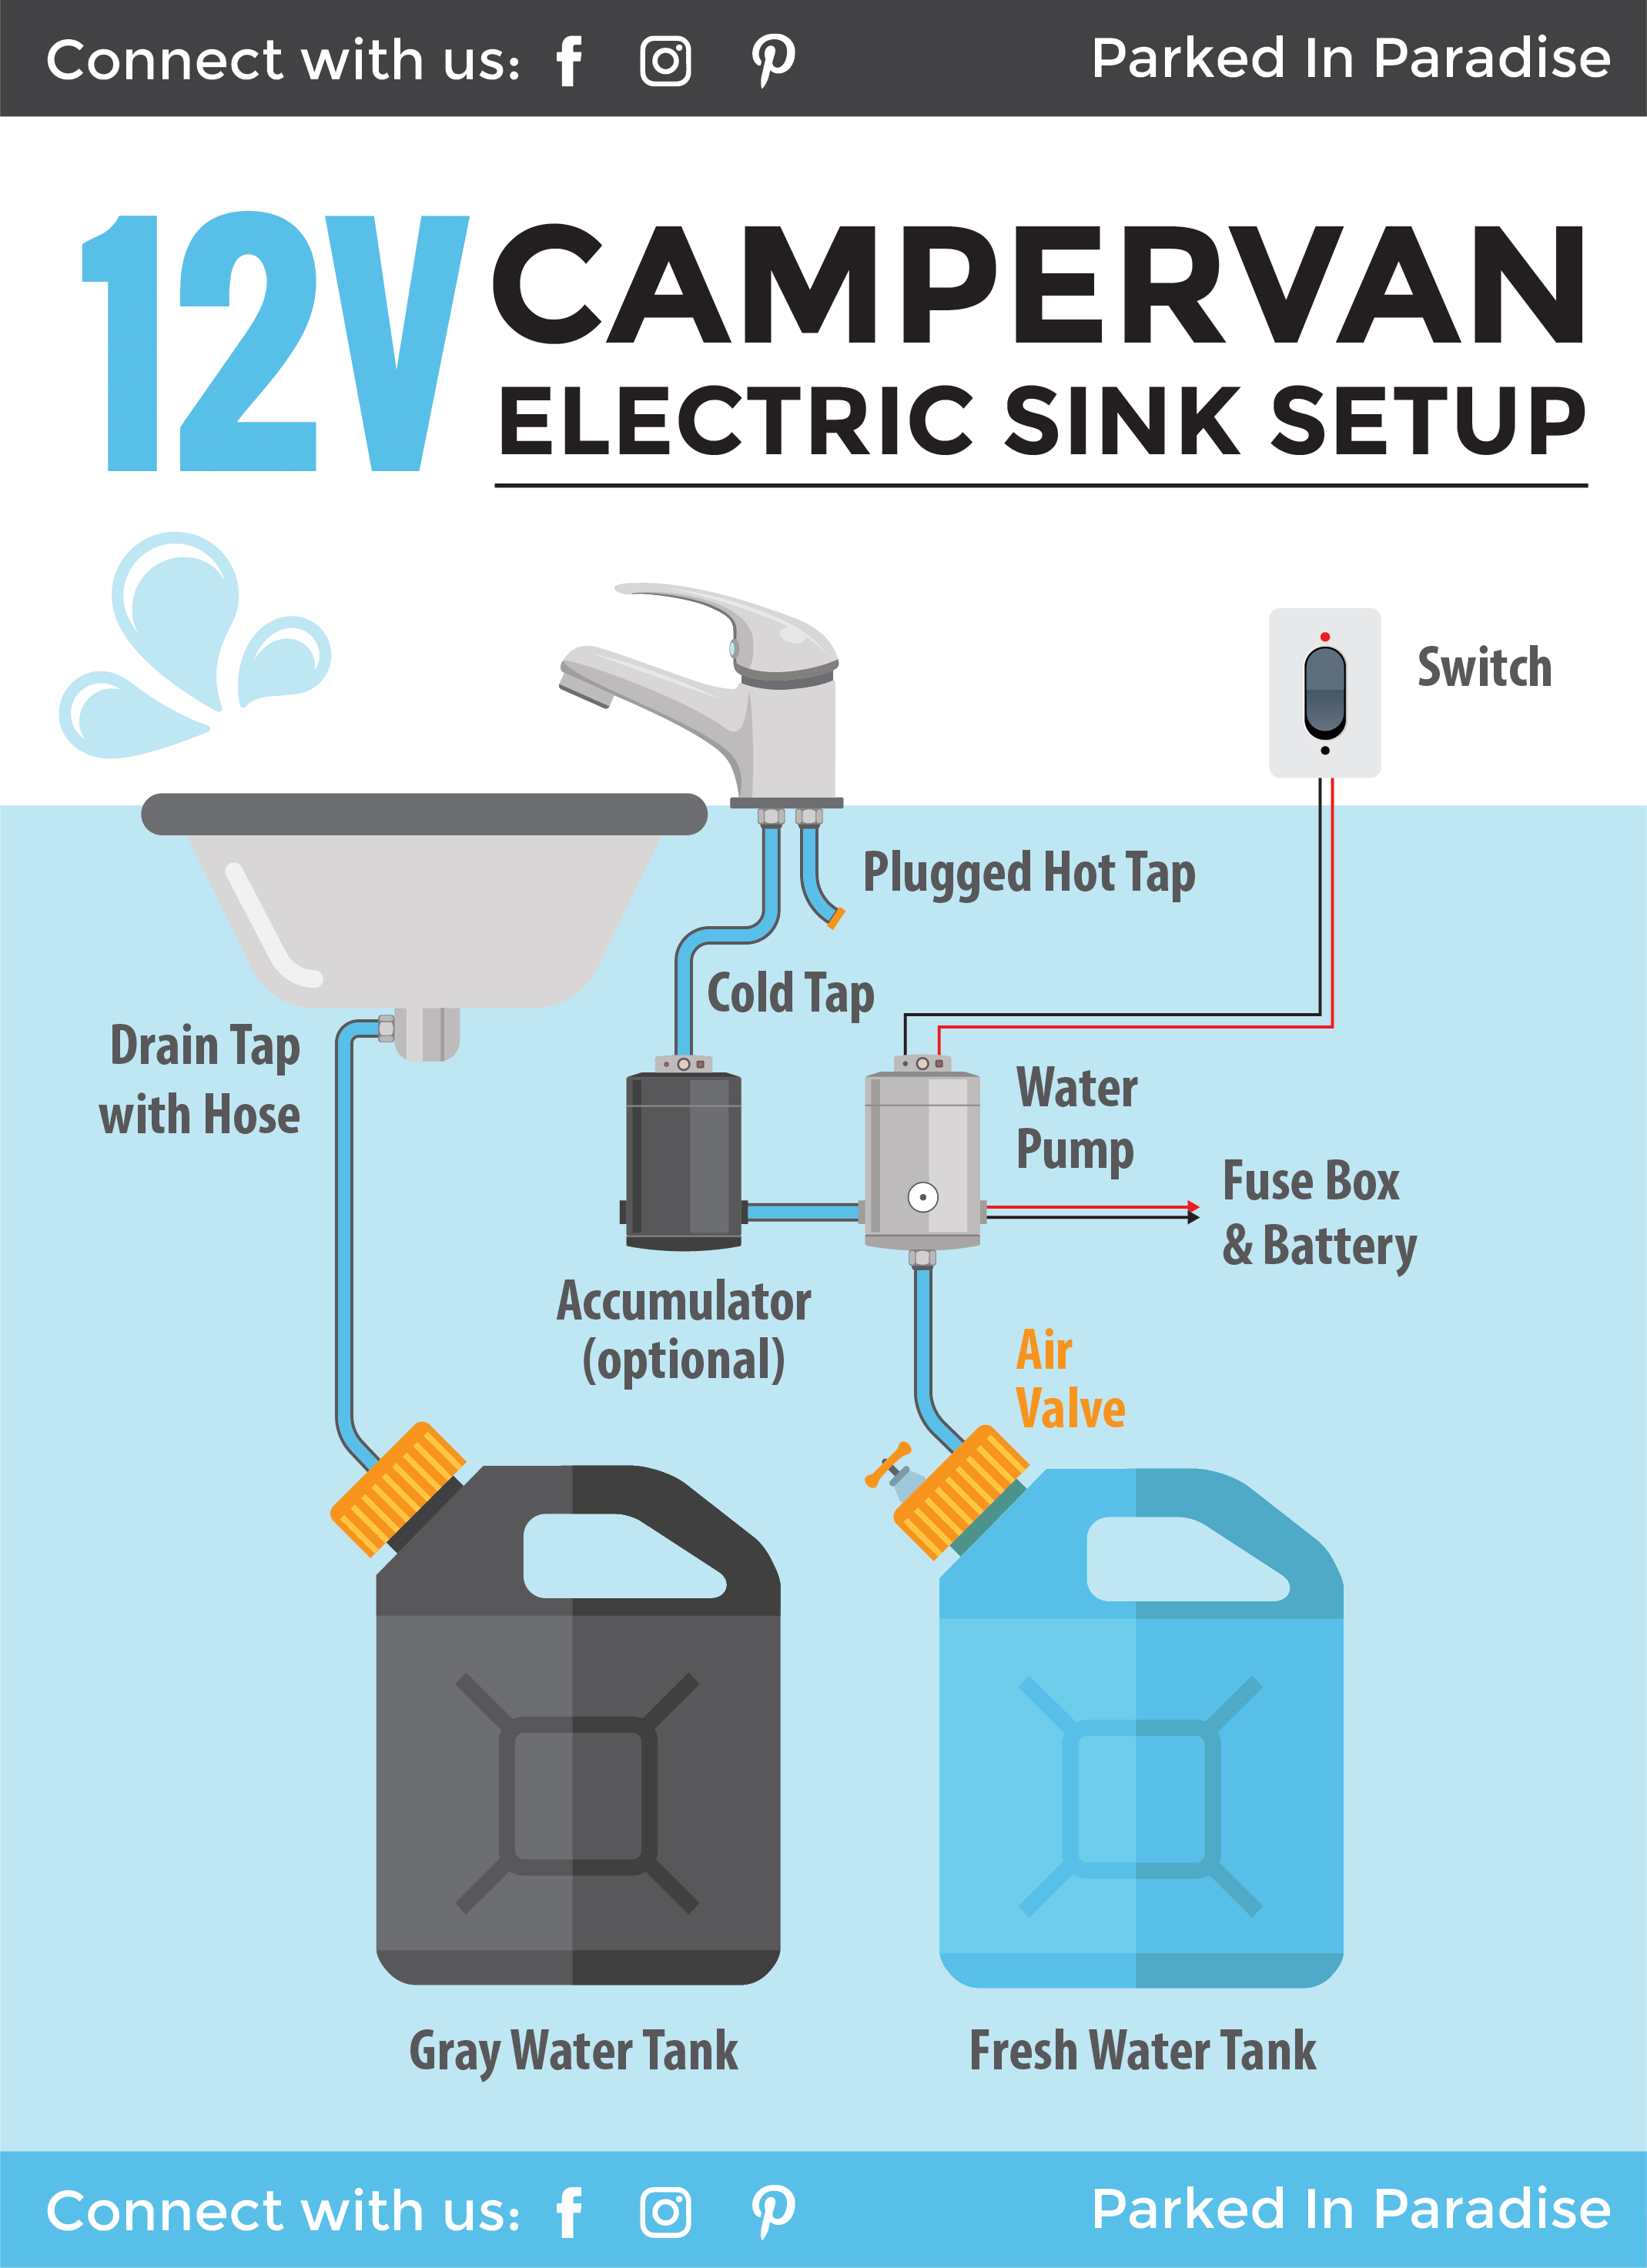 How To Install A Campervan Water System Sink Plumbing Diagrams Camper Van Van Life Diy Campervan